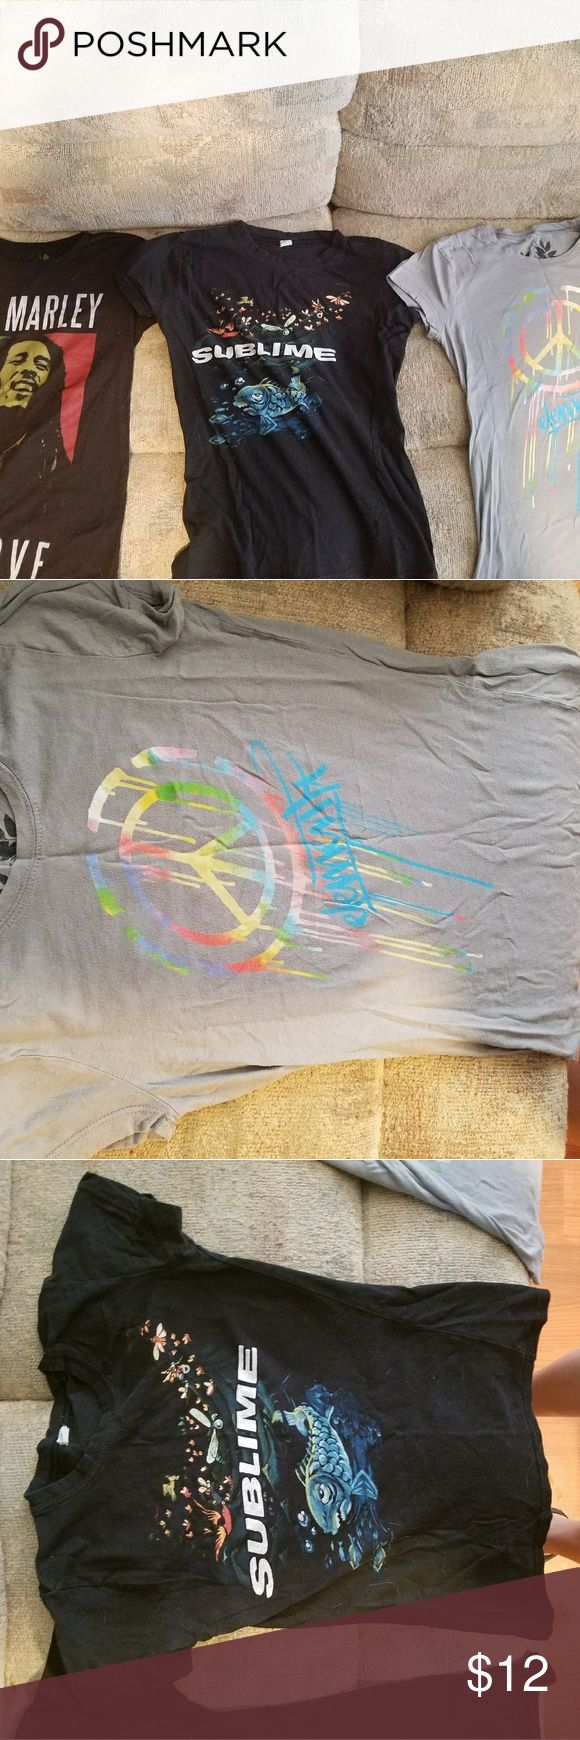 Bob Marley, sublime and Element t-shirts Gently worn cute t-shirts. Bob Marley shirt is size xs ] Sublime t-shirt is small but fits like xs ] Element shirt says size medium but fits like small-xs Tops Tees - Short Sleeve